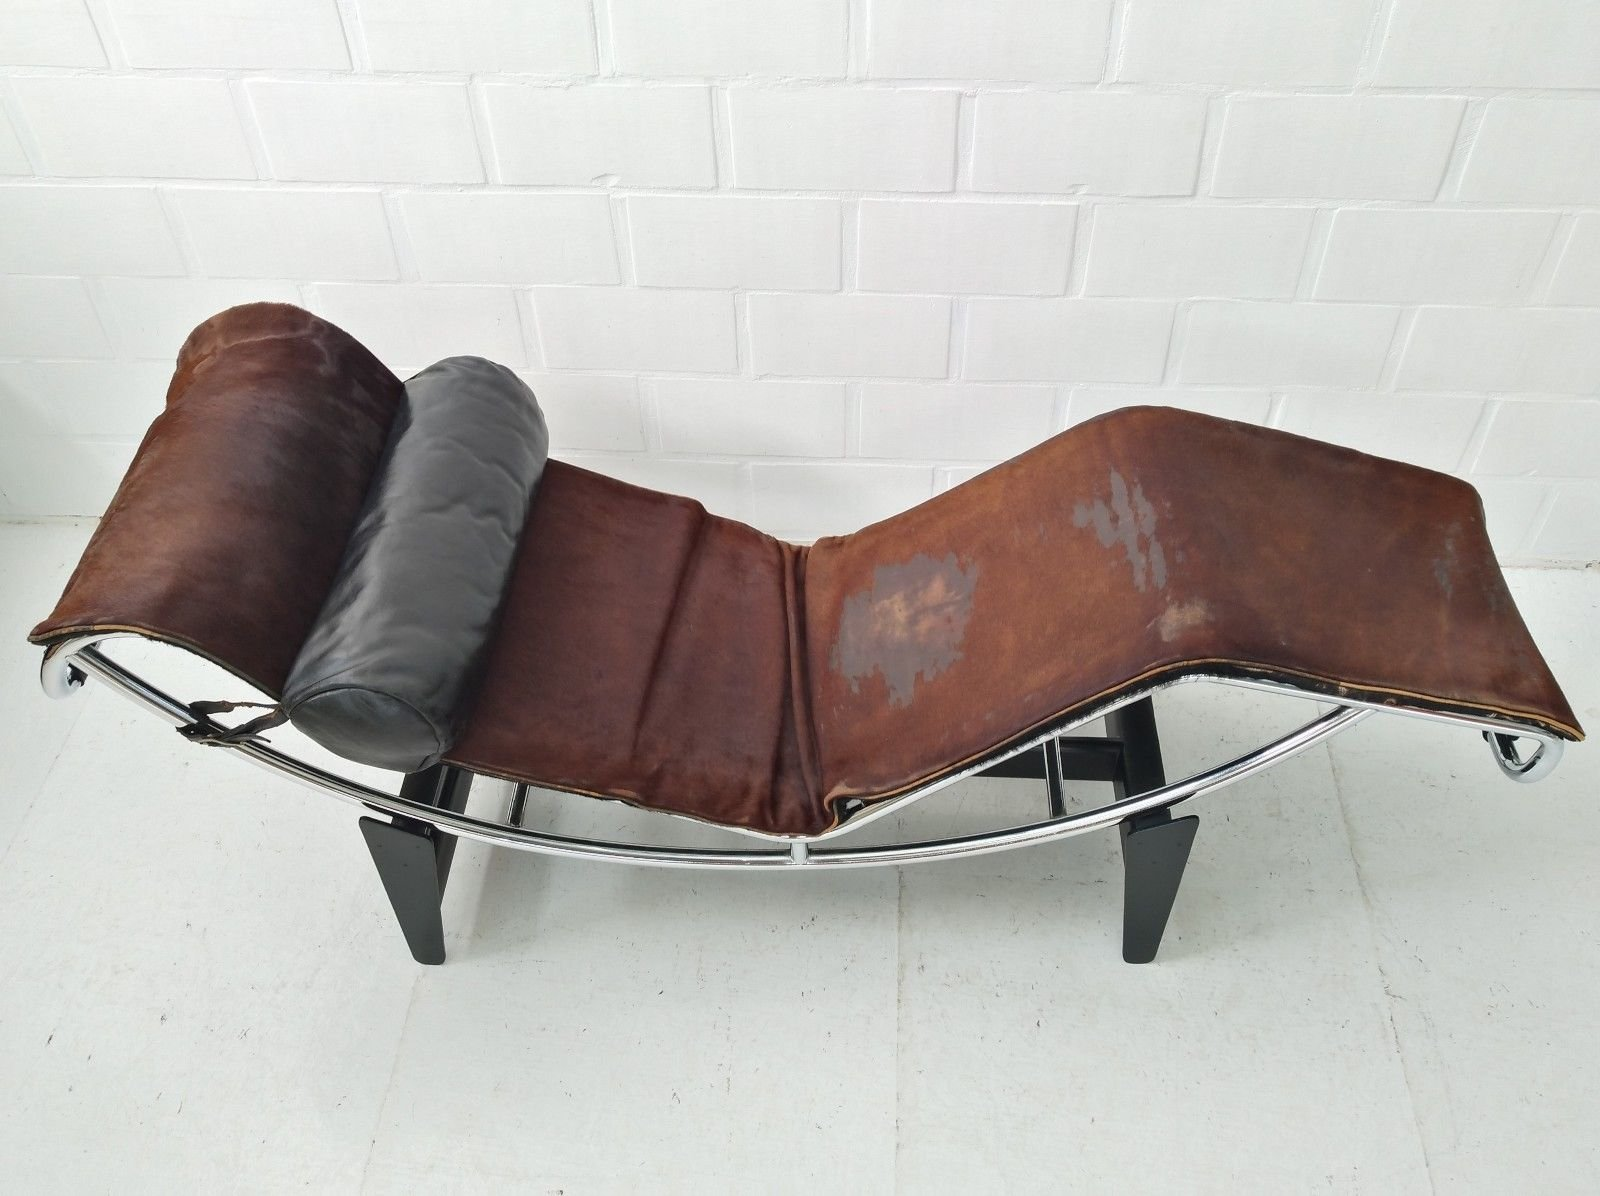 Beautiful Chaise Longue Prezzi Photos - Idee Regalo - Casa & Design ...